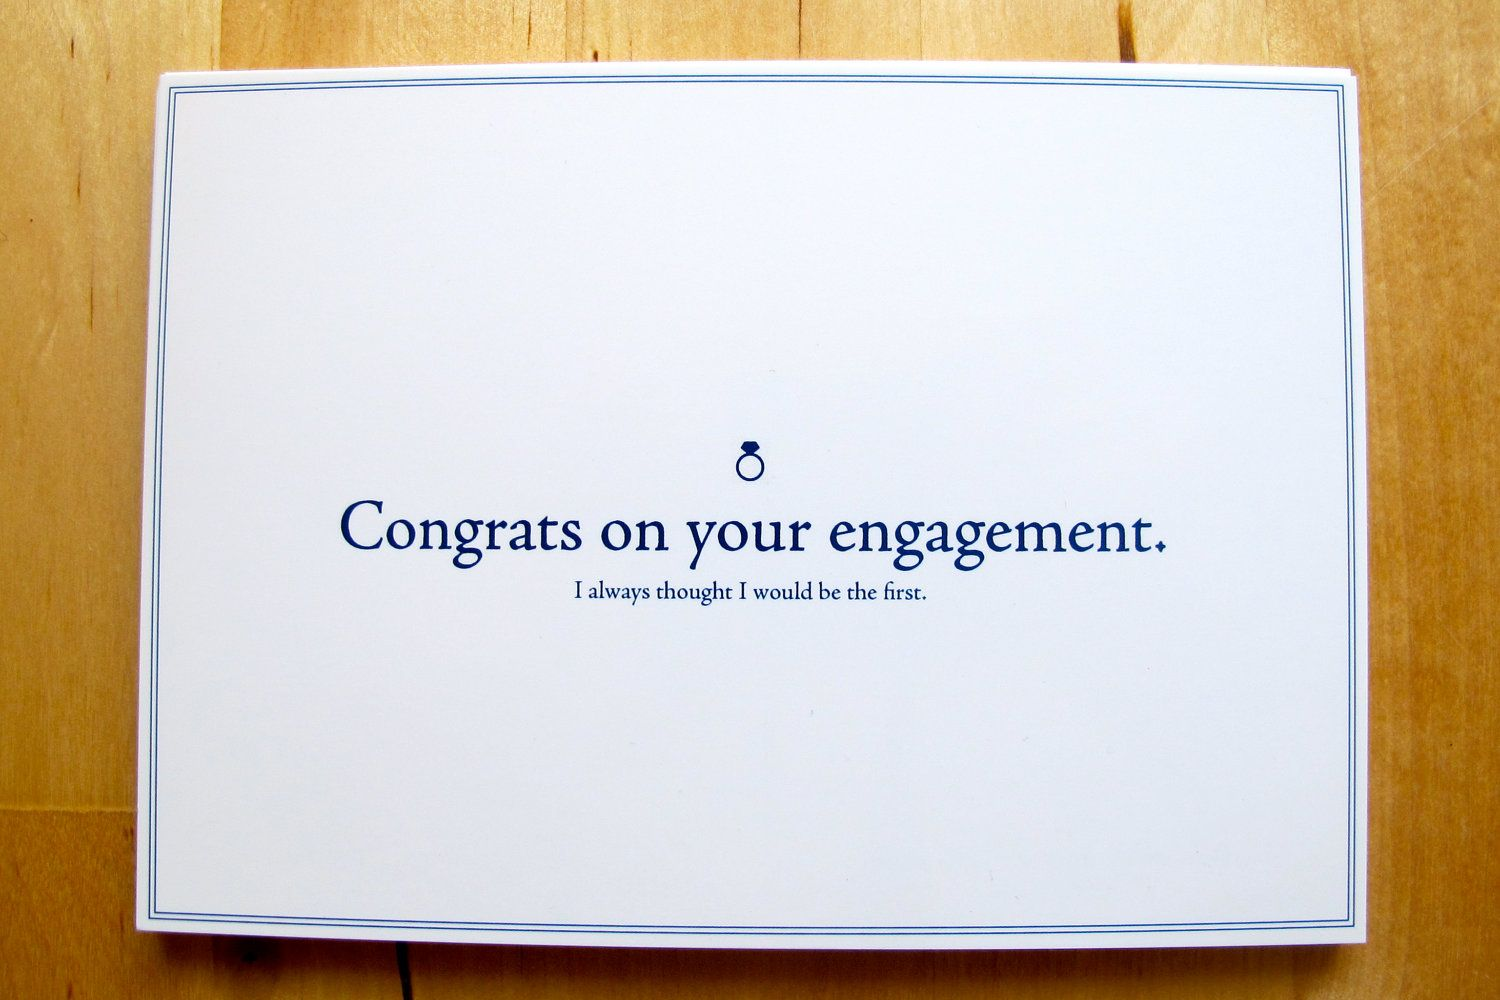 Passive aggressive greeting cards congrats on your engagement i passive aggressive greeting cards congrats on your engagement i always thought i would be kristyandbryce Image collections